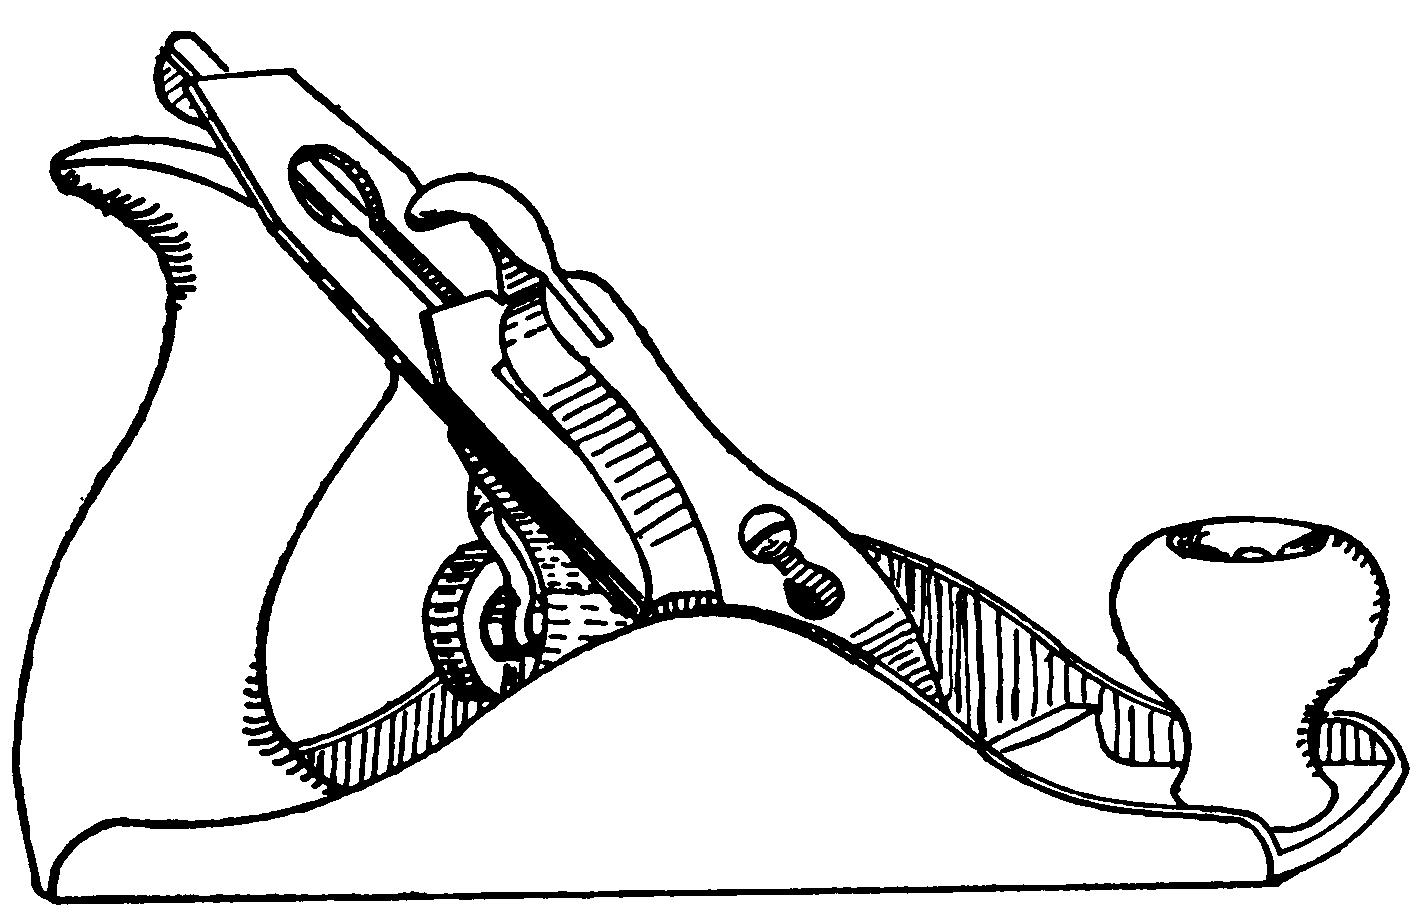 File smoothing plane png. Carpenter drawing work clipart clip art free library